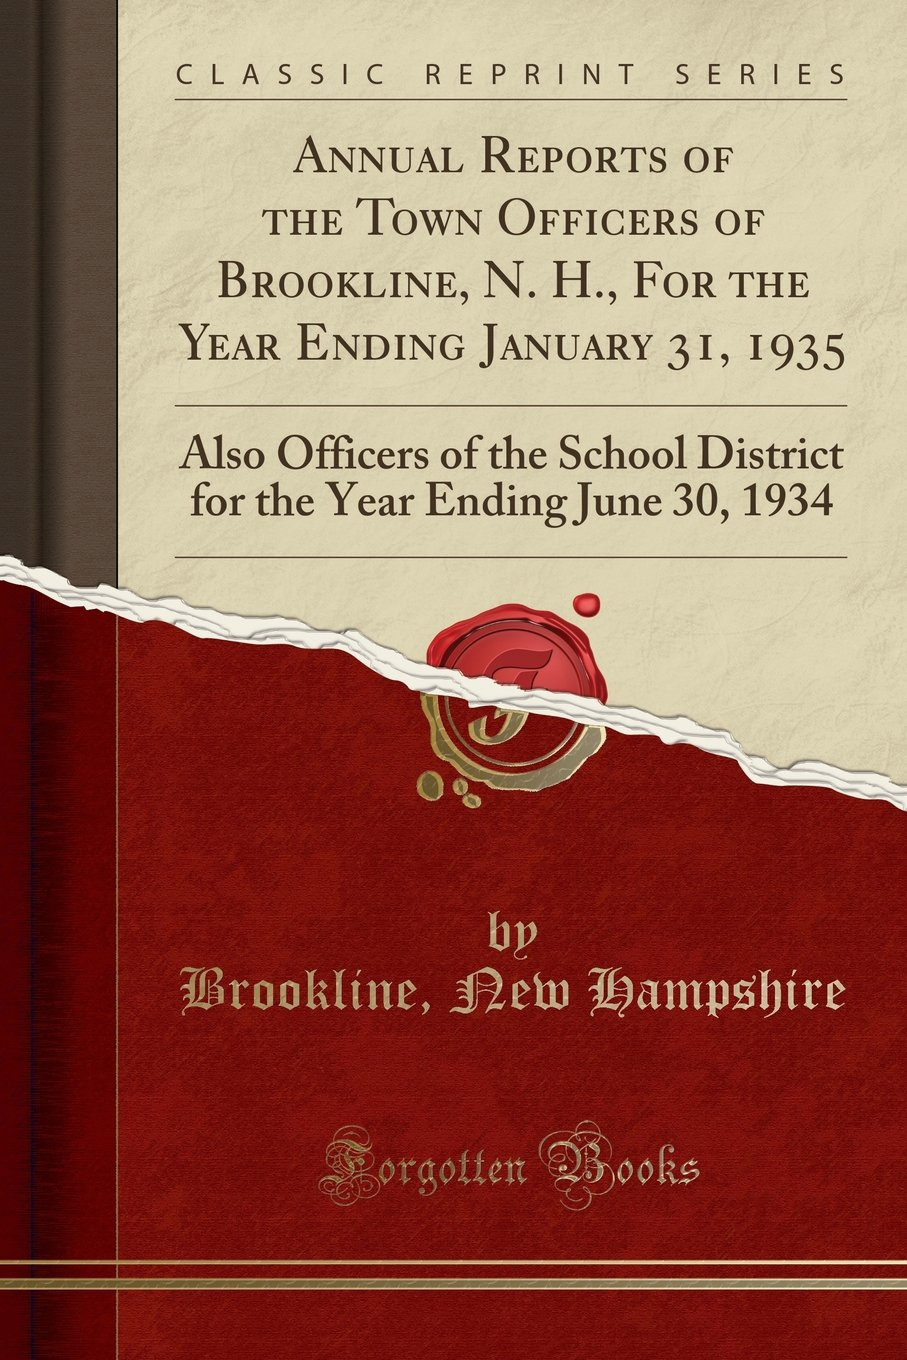 Annual Reports of the Town Officers of Brookline, N. H., For the Year Ending January 31, 1935: Also Officers of the School District for the Year Ending June 30, 1934 (Classic Reprint) ebook